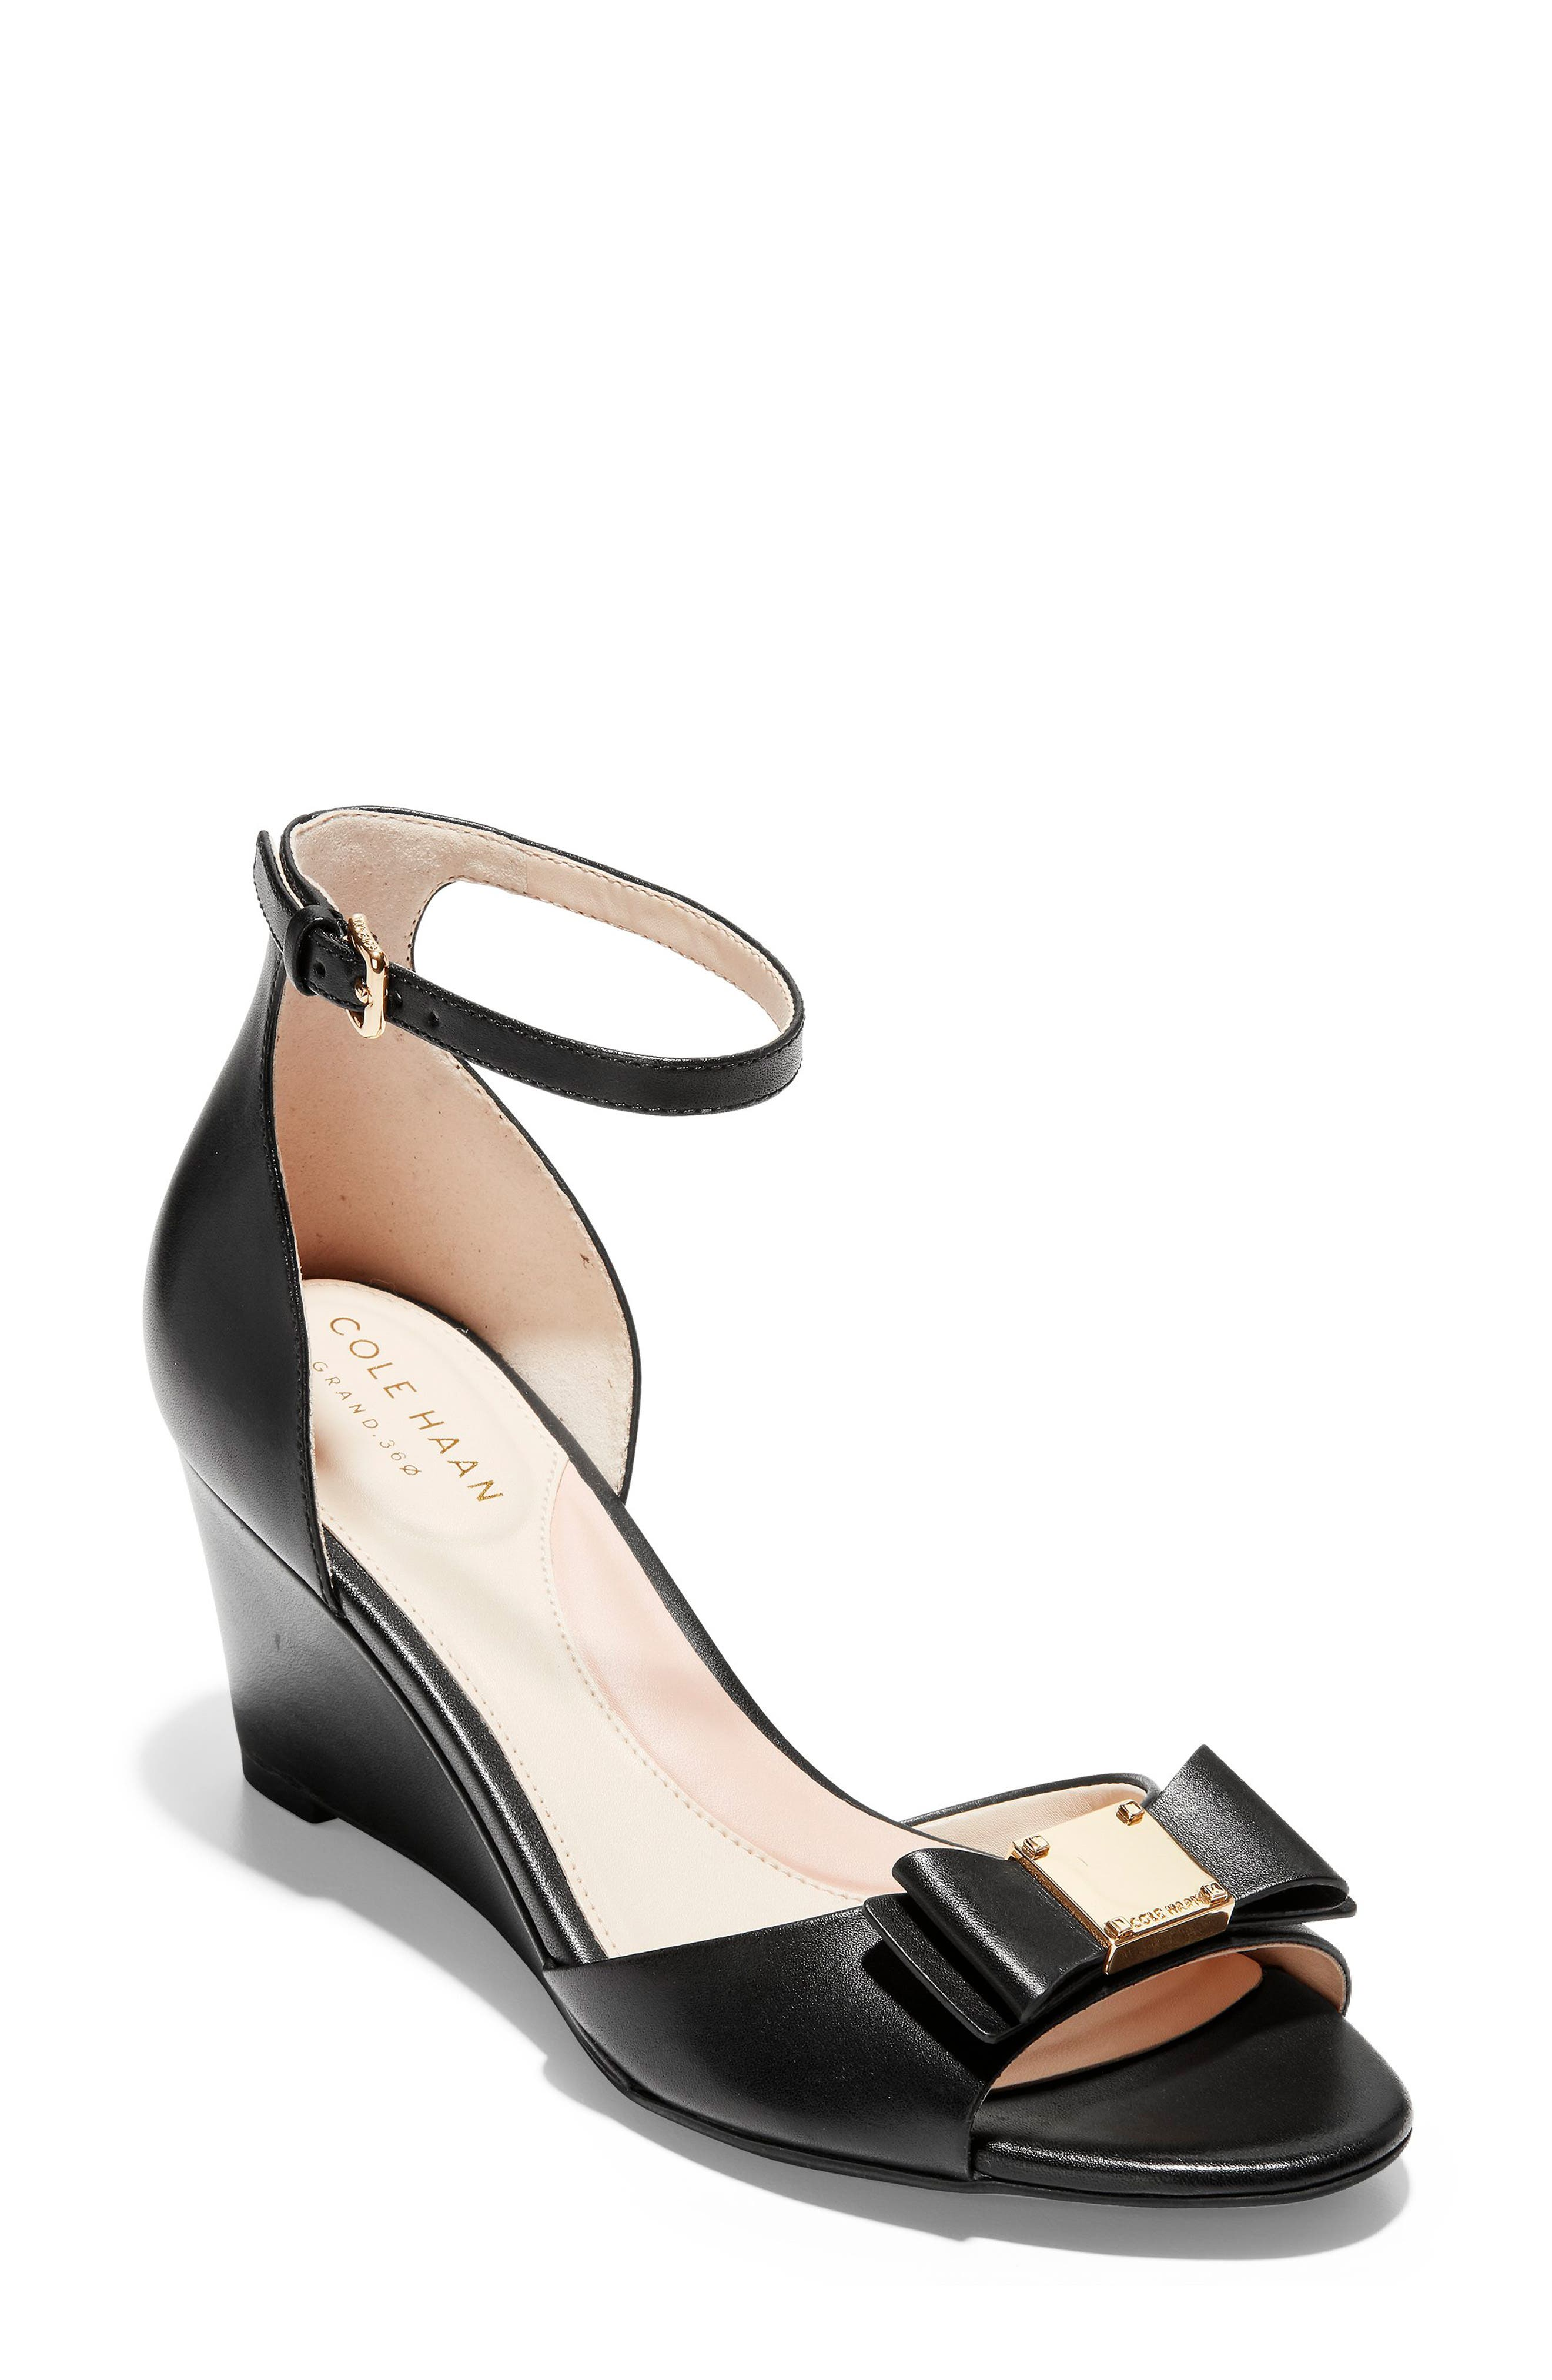 COLE HAAN Tali Bow Wedge Sandal, Main, color, BLACK LEATHER